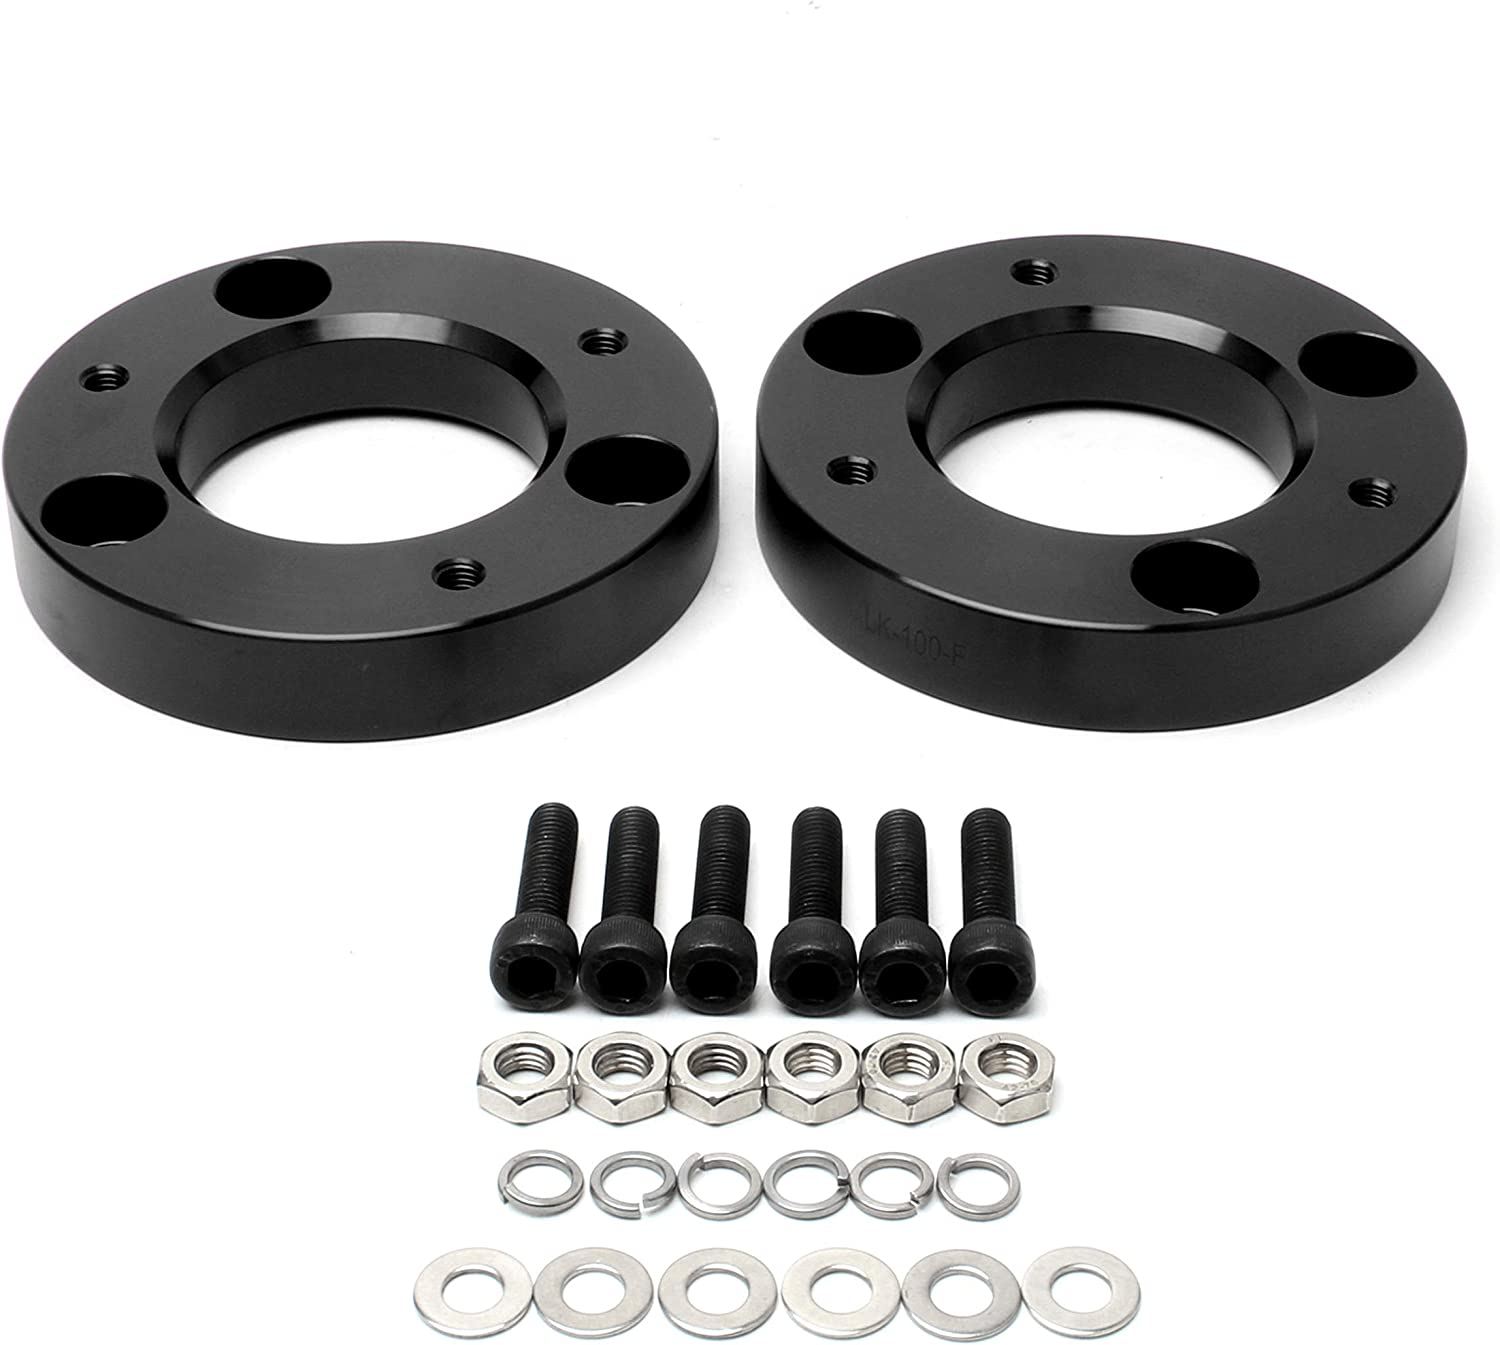 1 2WD 4WD ZY Wheel Front Leveling Lift Kits Strut Spacers for 2004-2020 Ford F150 2003-2017 Ford Expedition 2005-2008 Lincoln Mark LT